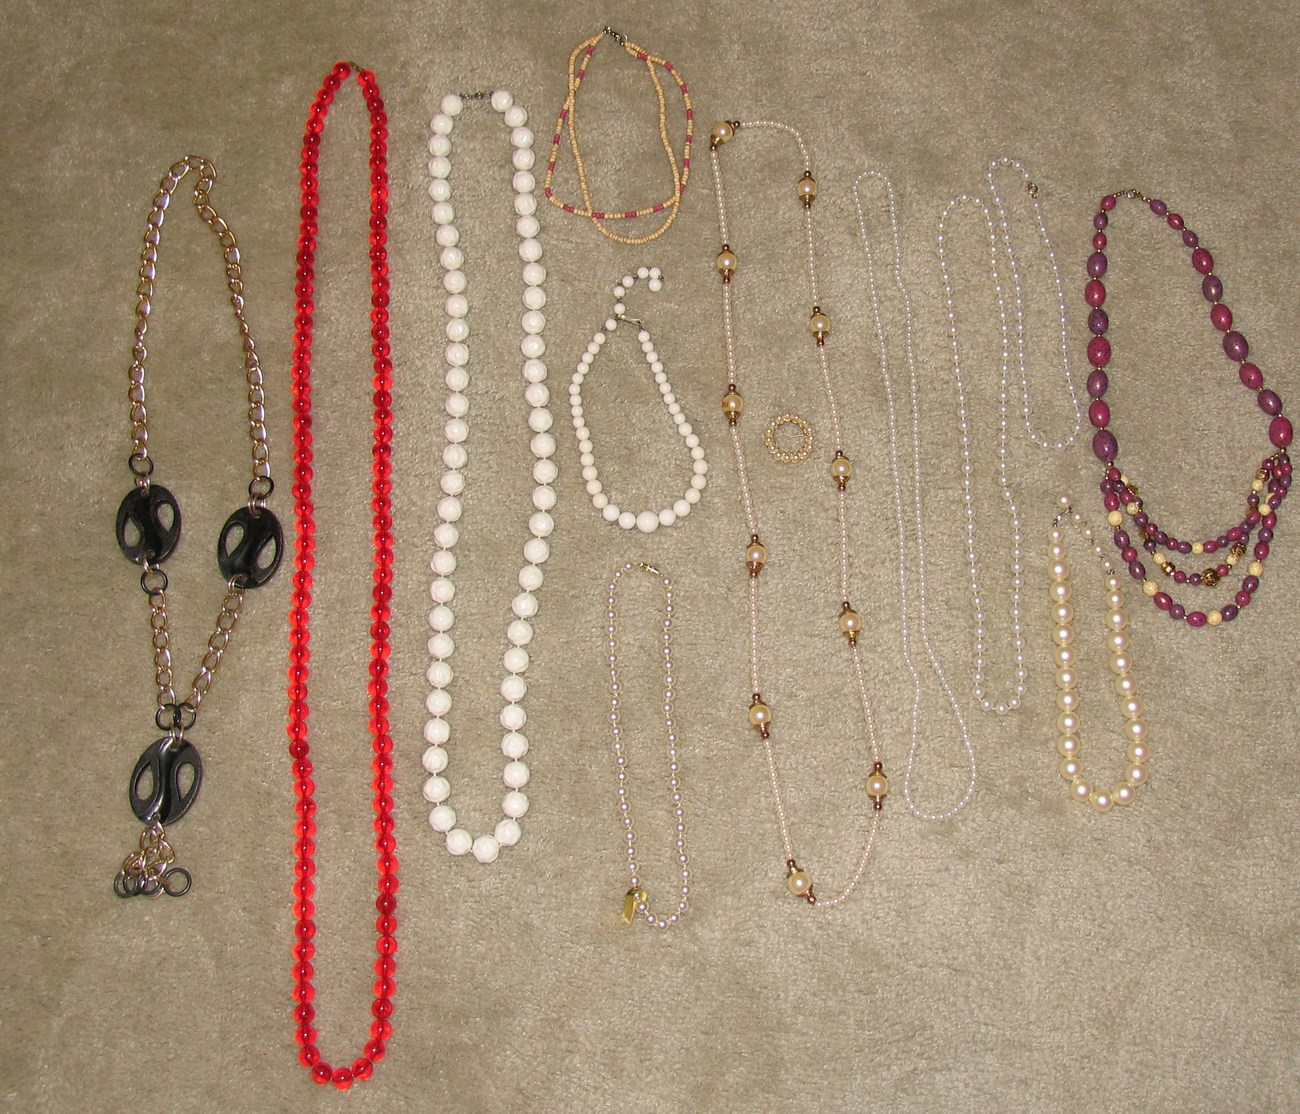 12 necklaces 12 50 inches  2